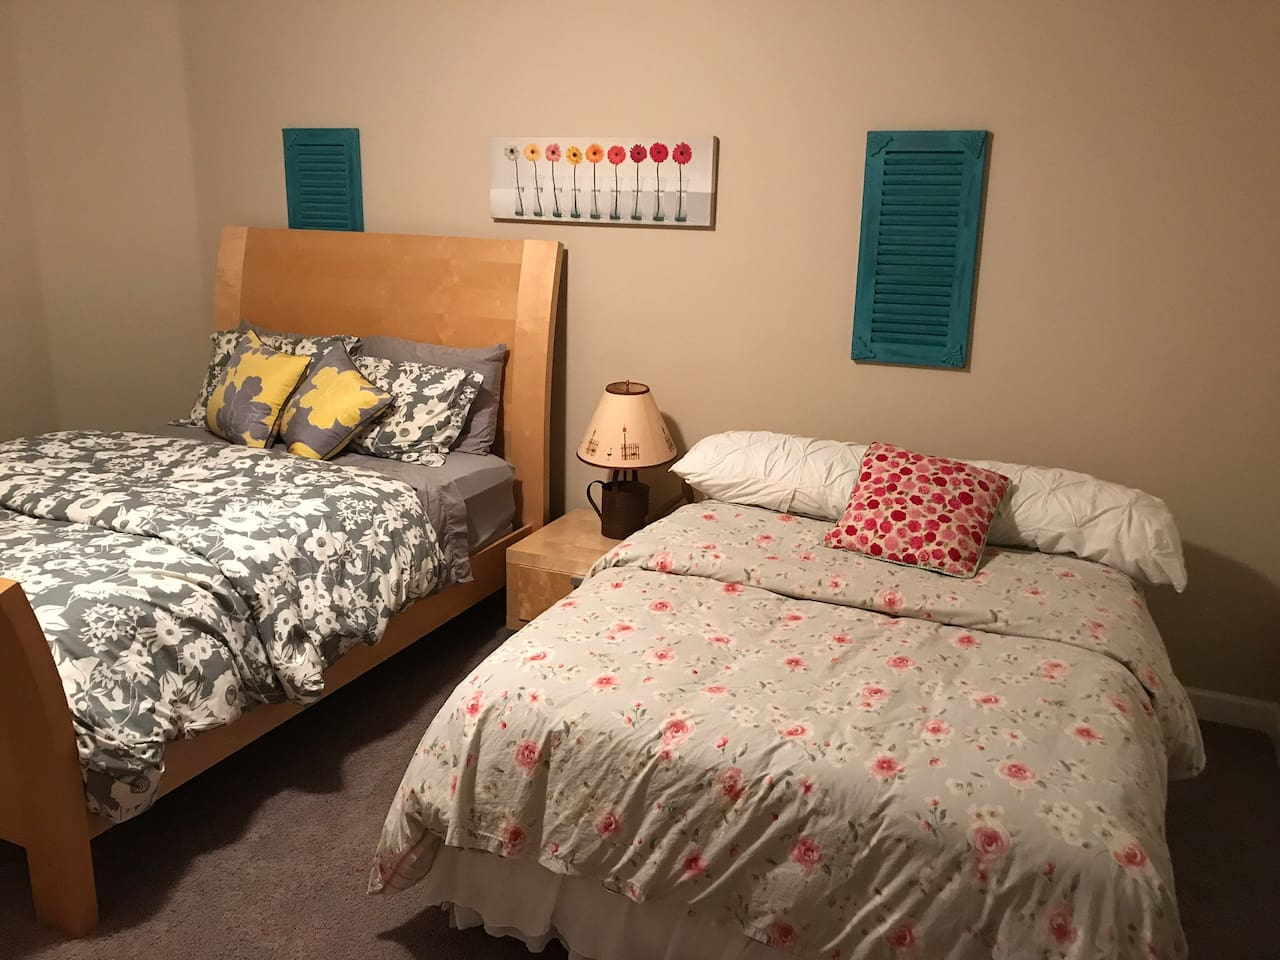 Queen size bed and full size bed